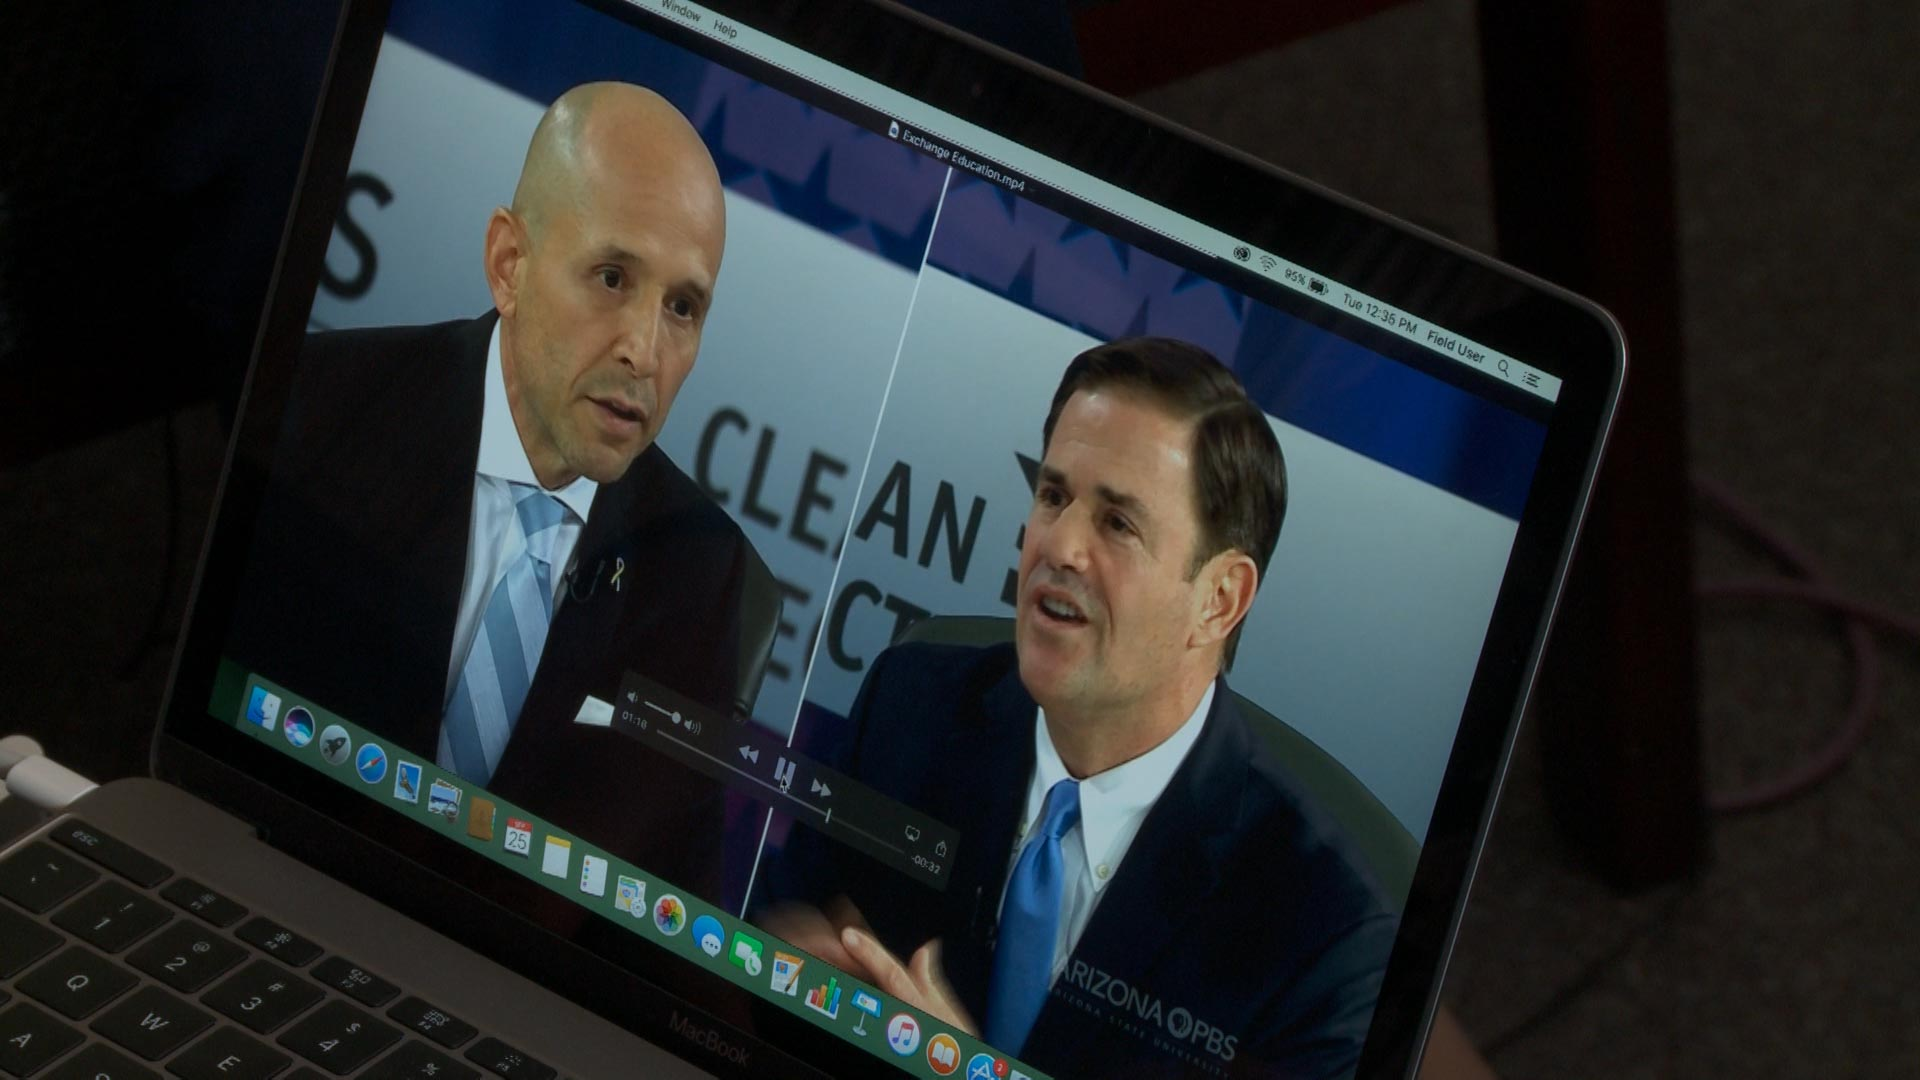 A laptop plays a clip showing Republican Gov. Doug Ducey and Democratic challenger David Garcia at their first debate hosted by Arizona PBS and the Citizens Clean Elections Commission in Phoenix. The first debate took place September 24, 2018.